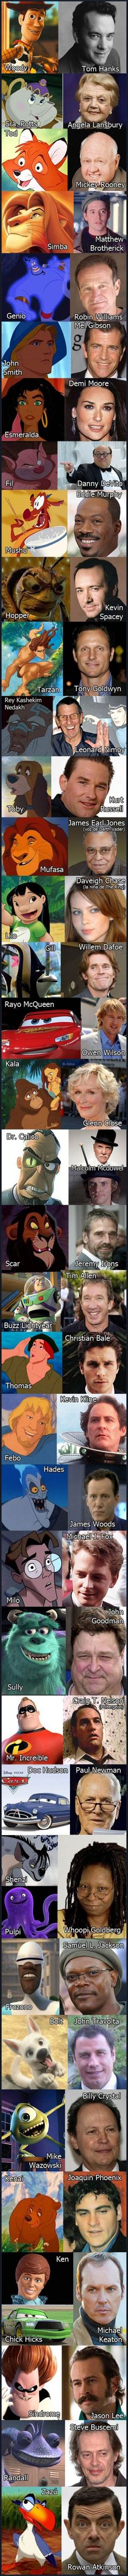 animated characters <3